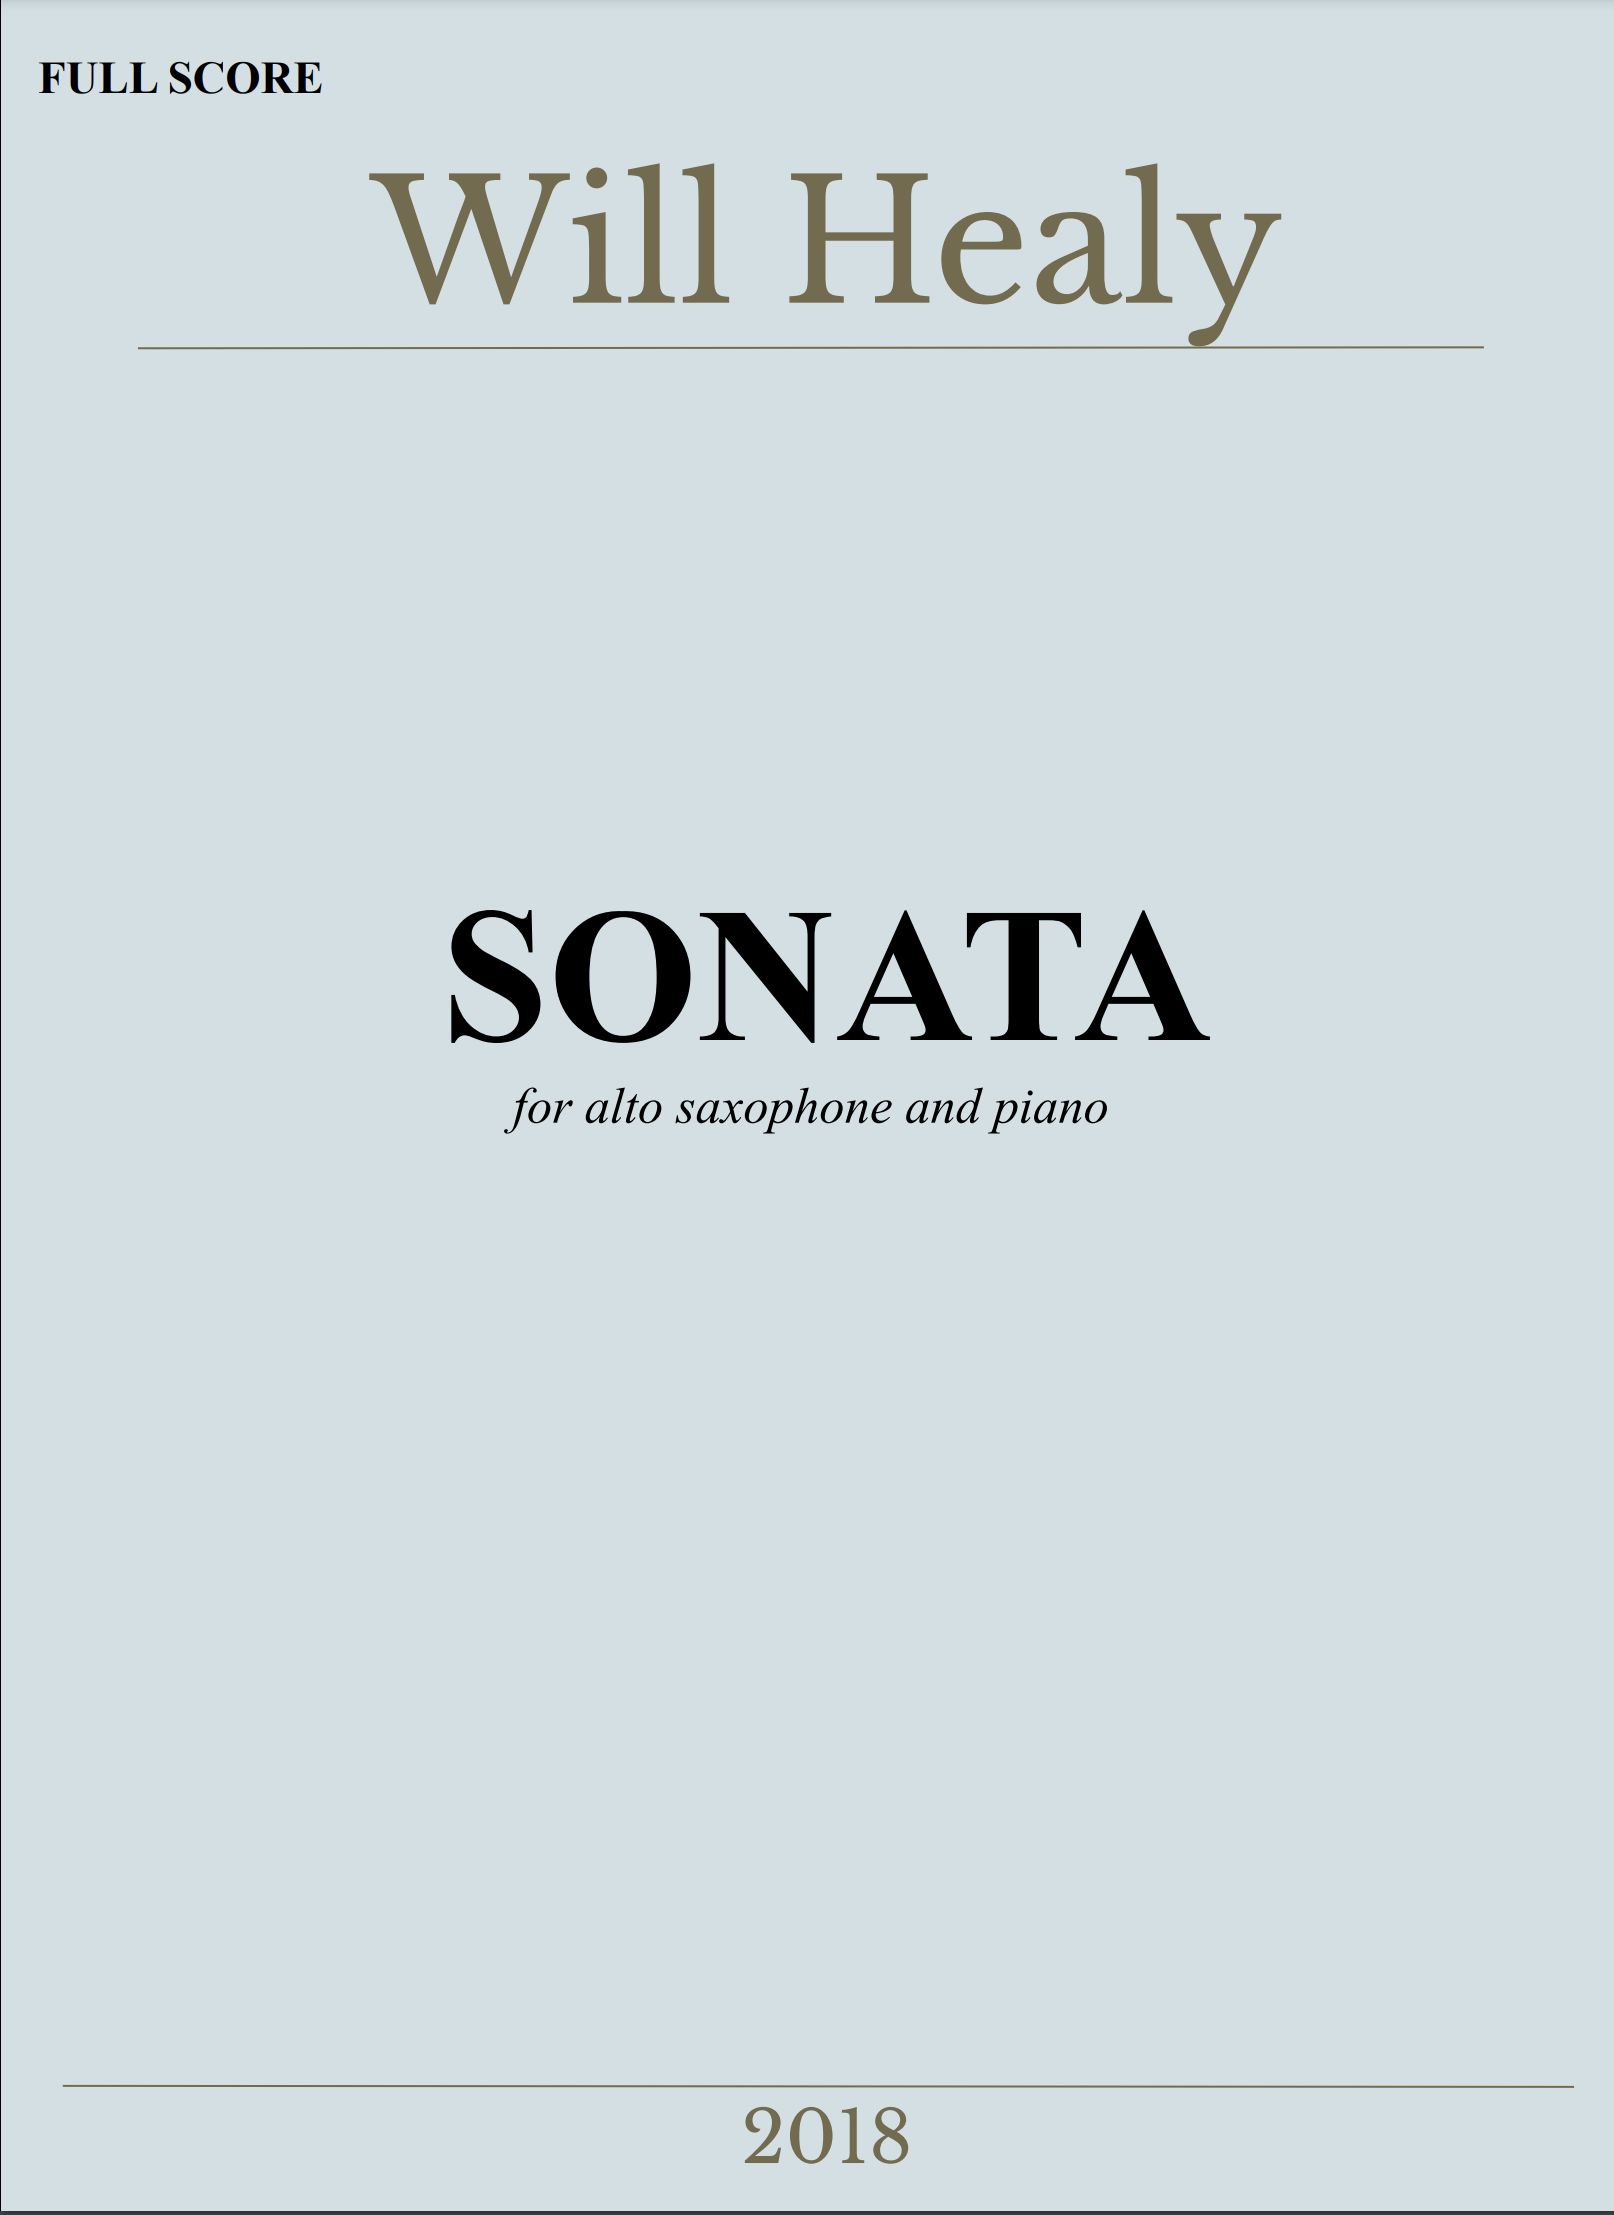 Sonata For Alto Saxophone And Piano by Will Healy